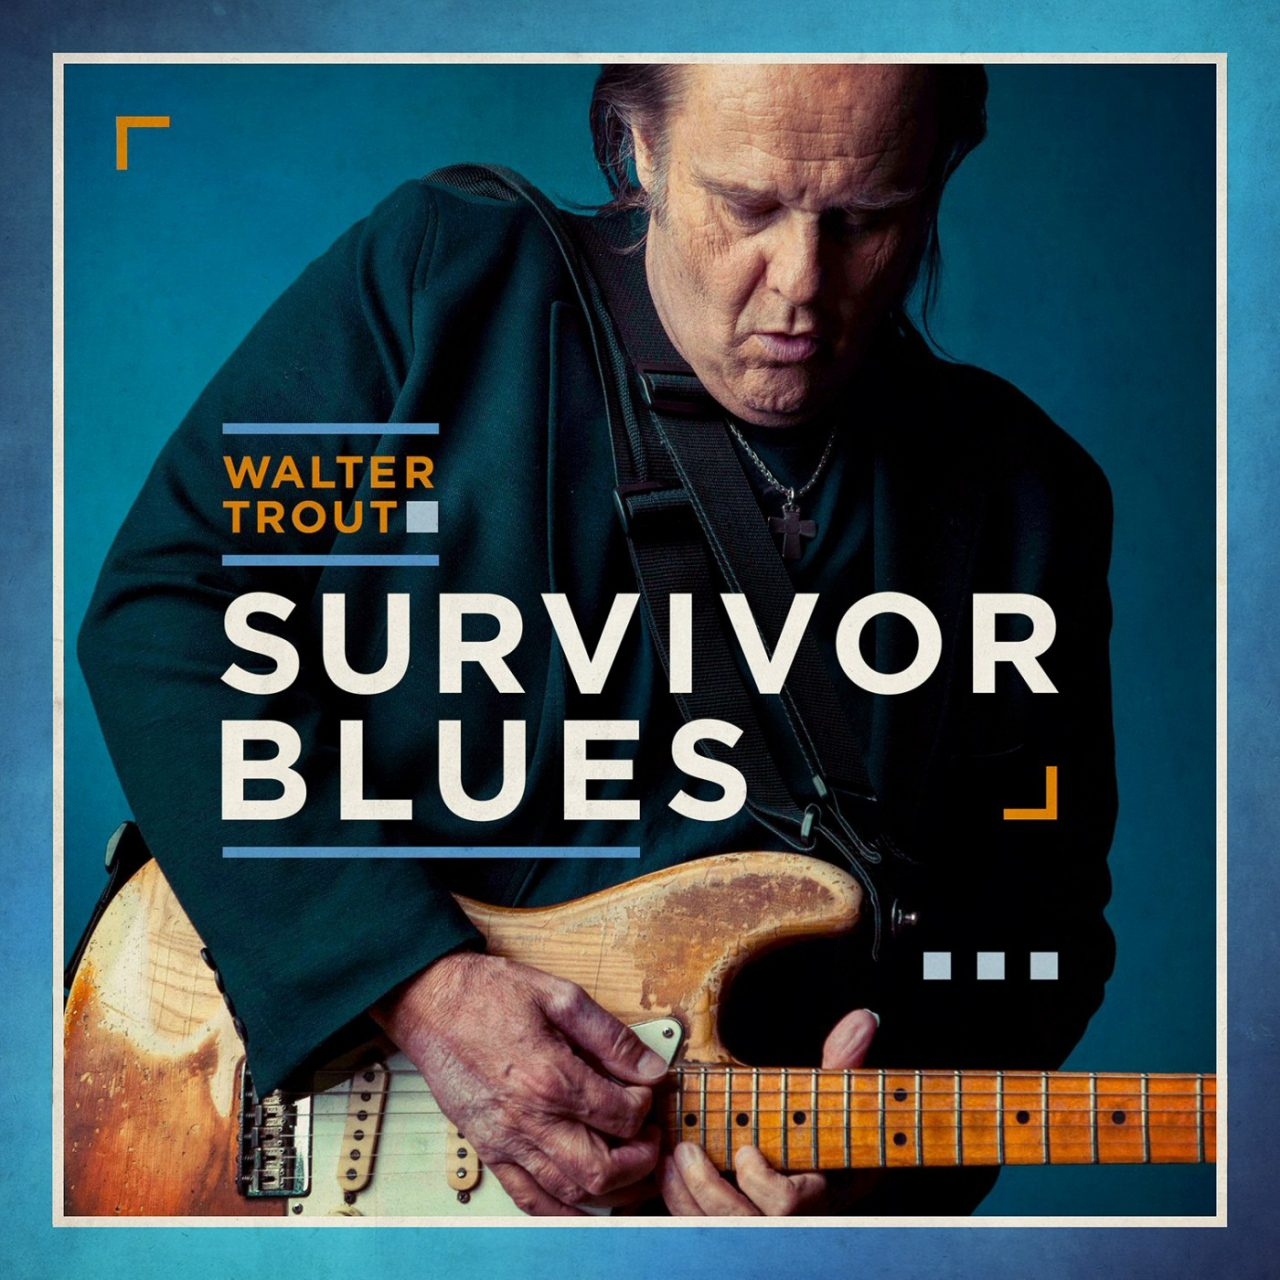 Walter Trout – Survivor Blues